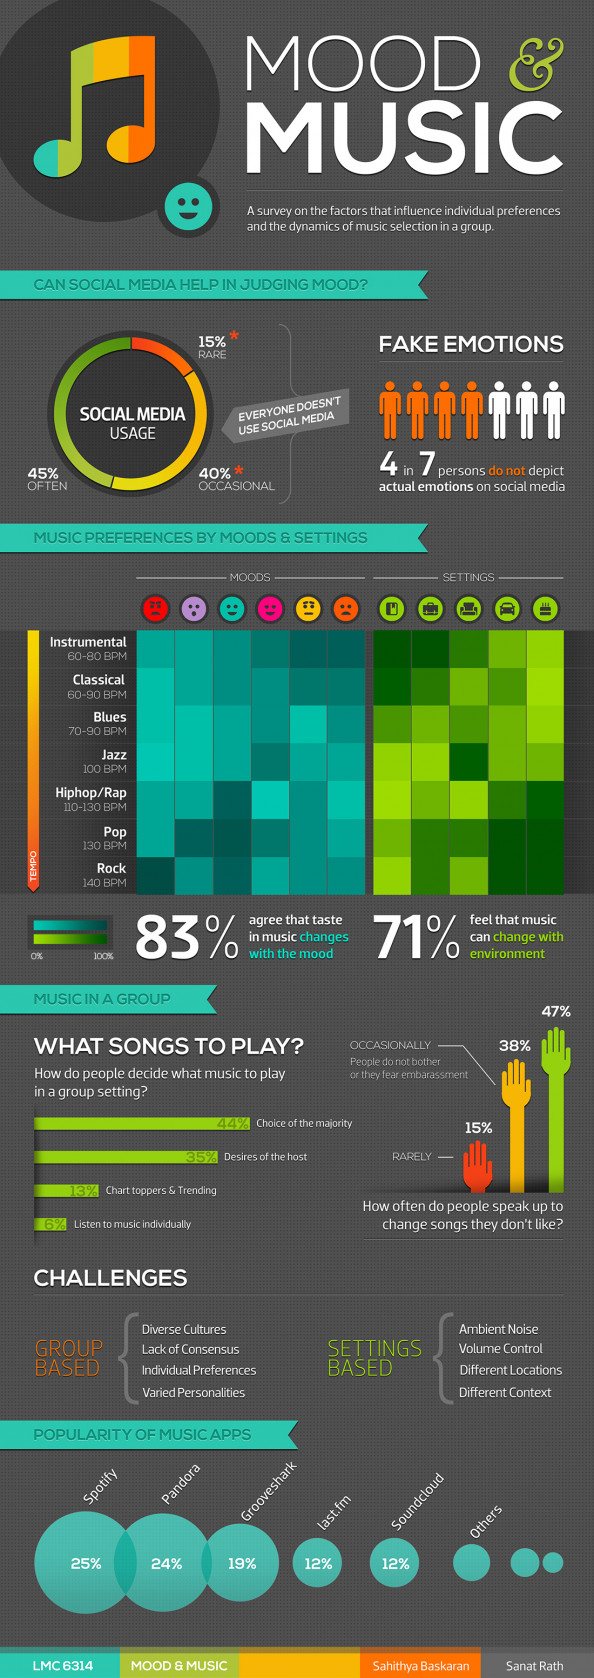 Mood &amp; Music Infographic